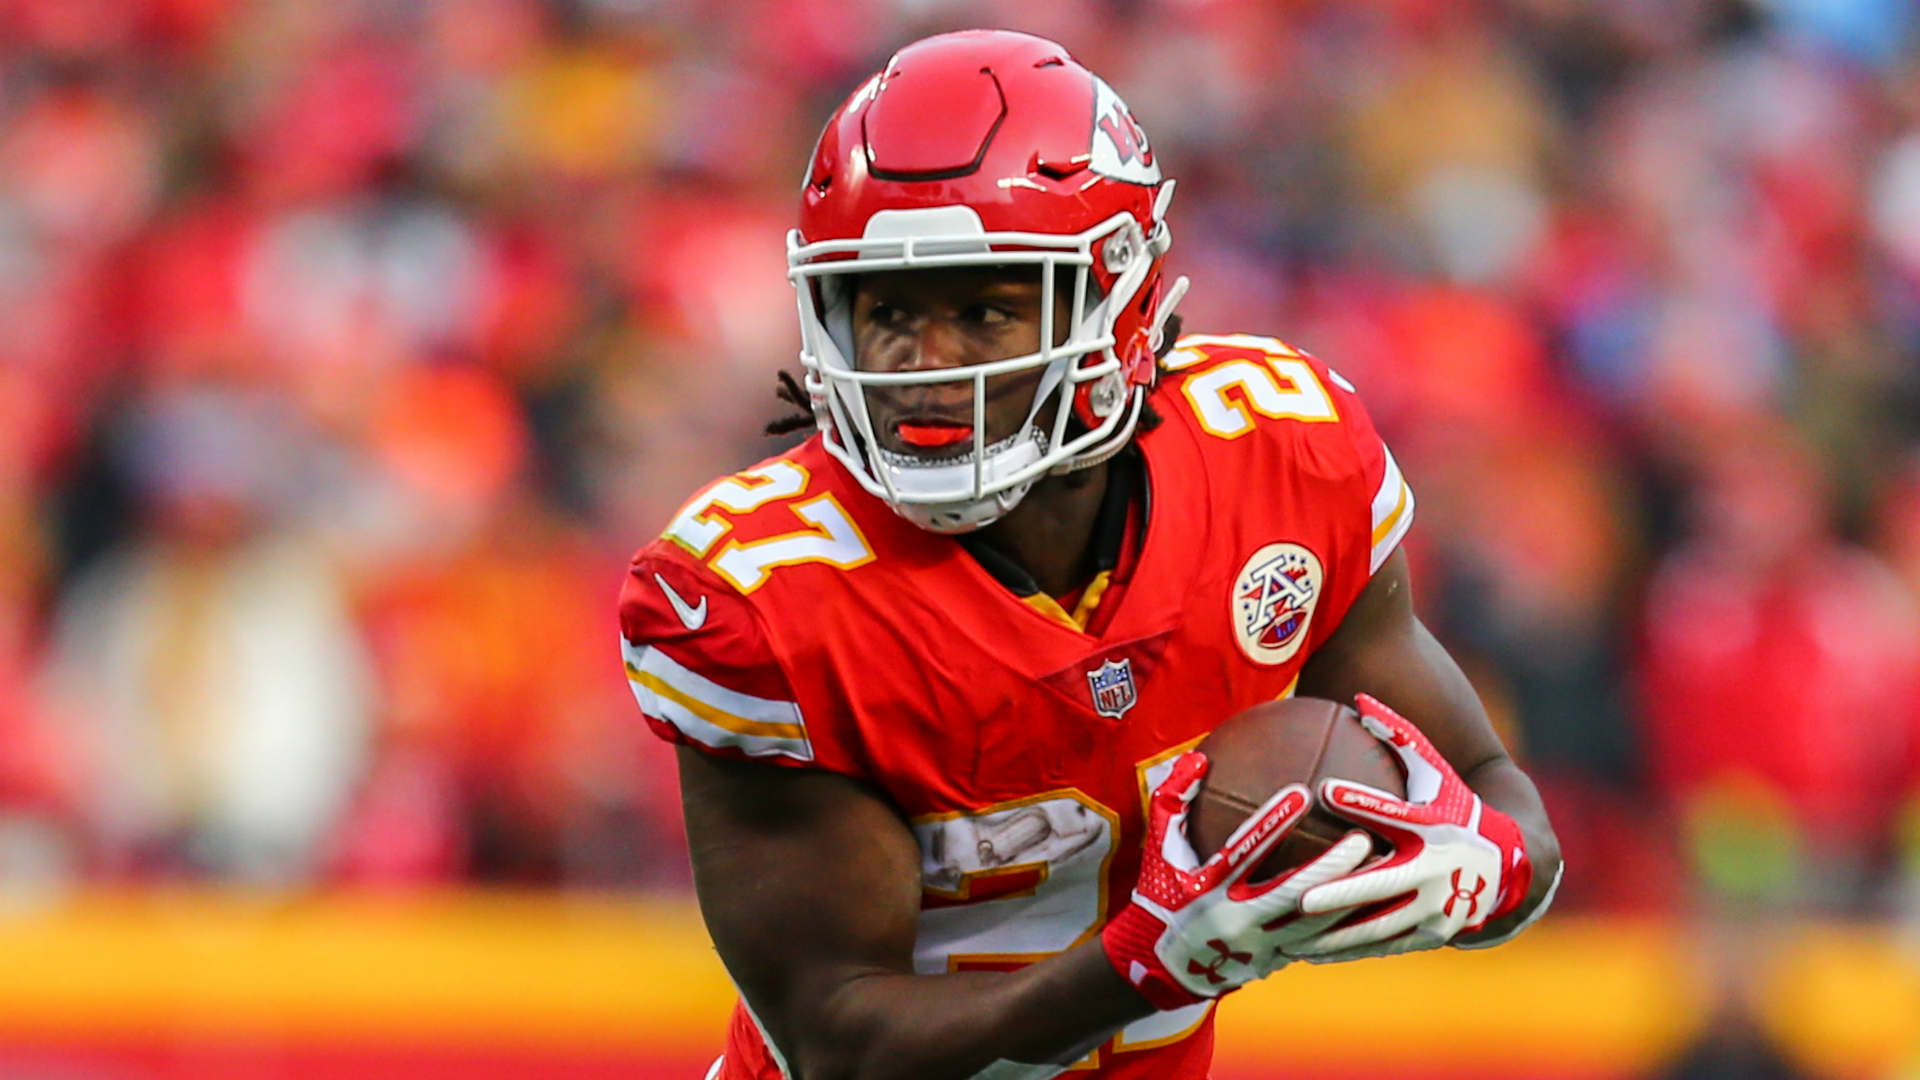 Kareem Hunt Alleged to Have 'Shoved and Pushed' Woman in Dispute